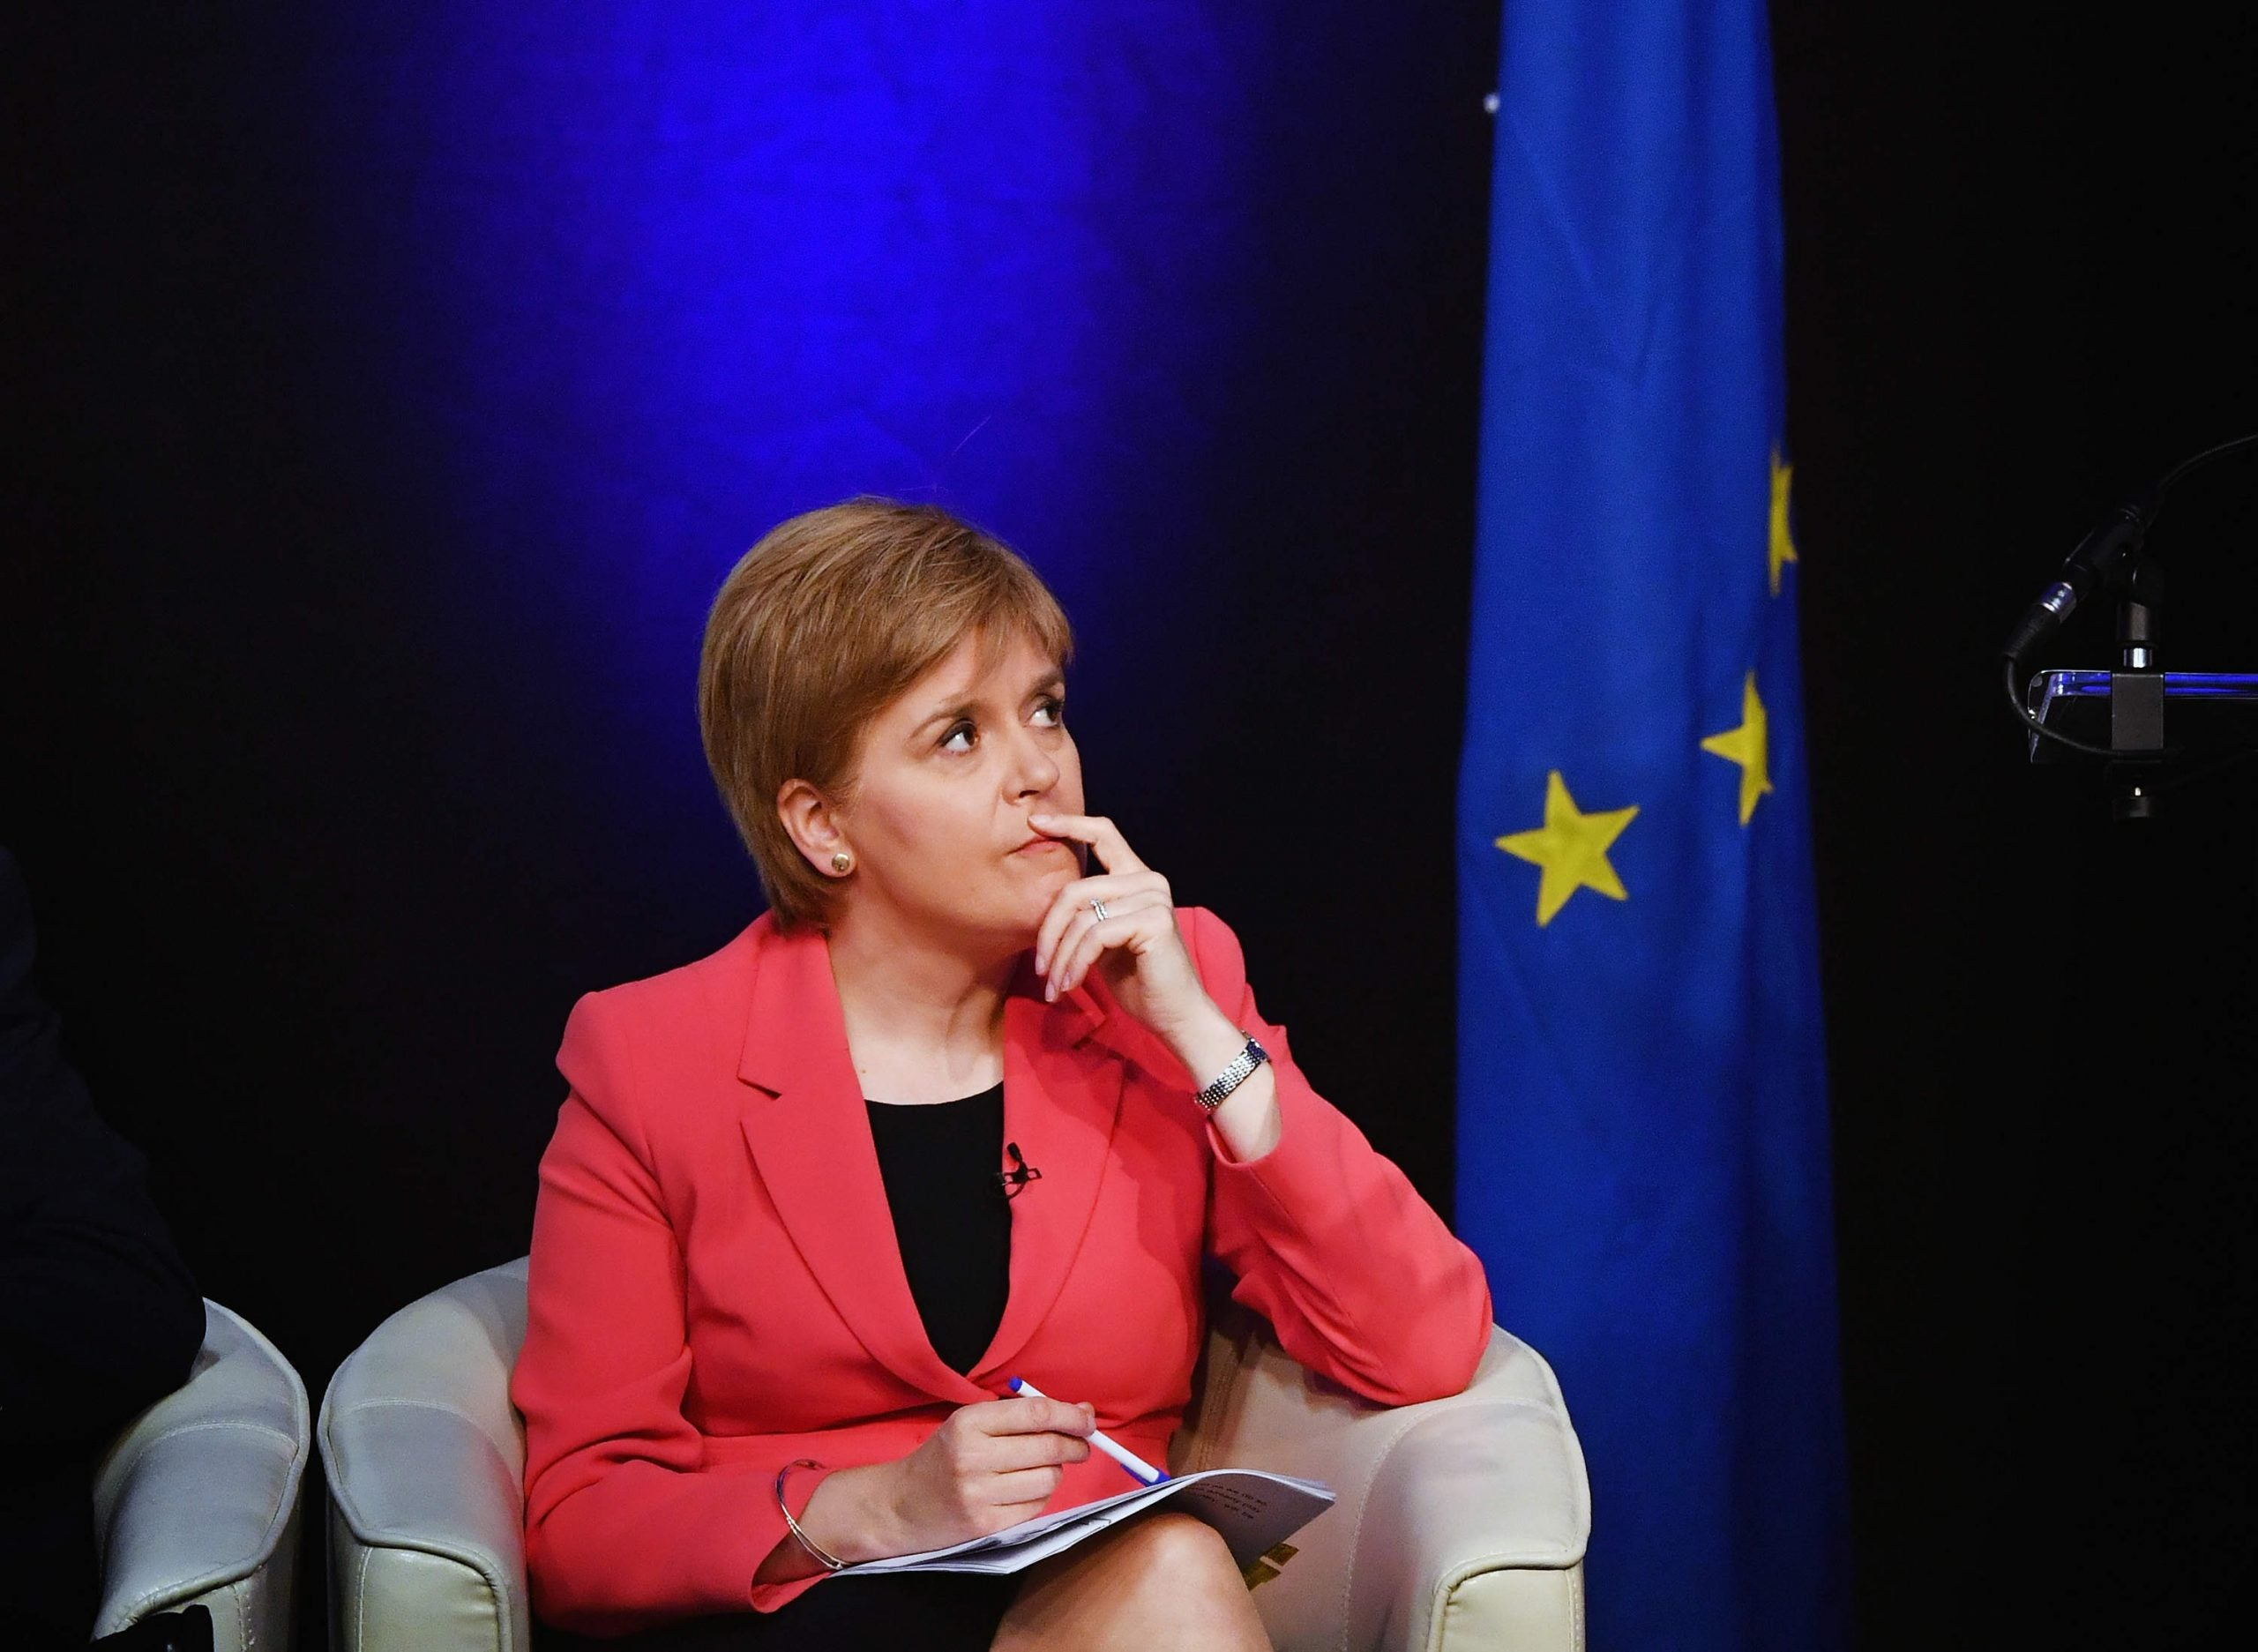 If the SNP truly want another referendum, the clock is ticking